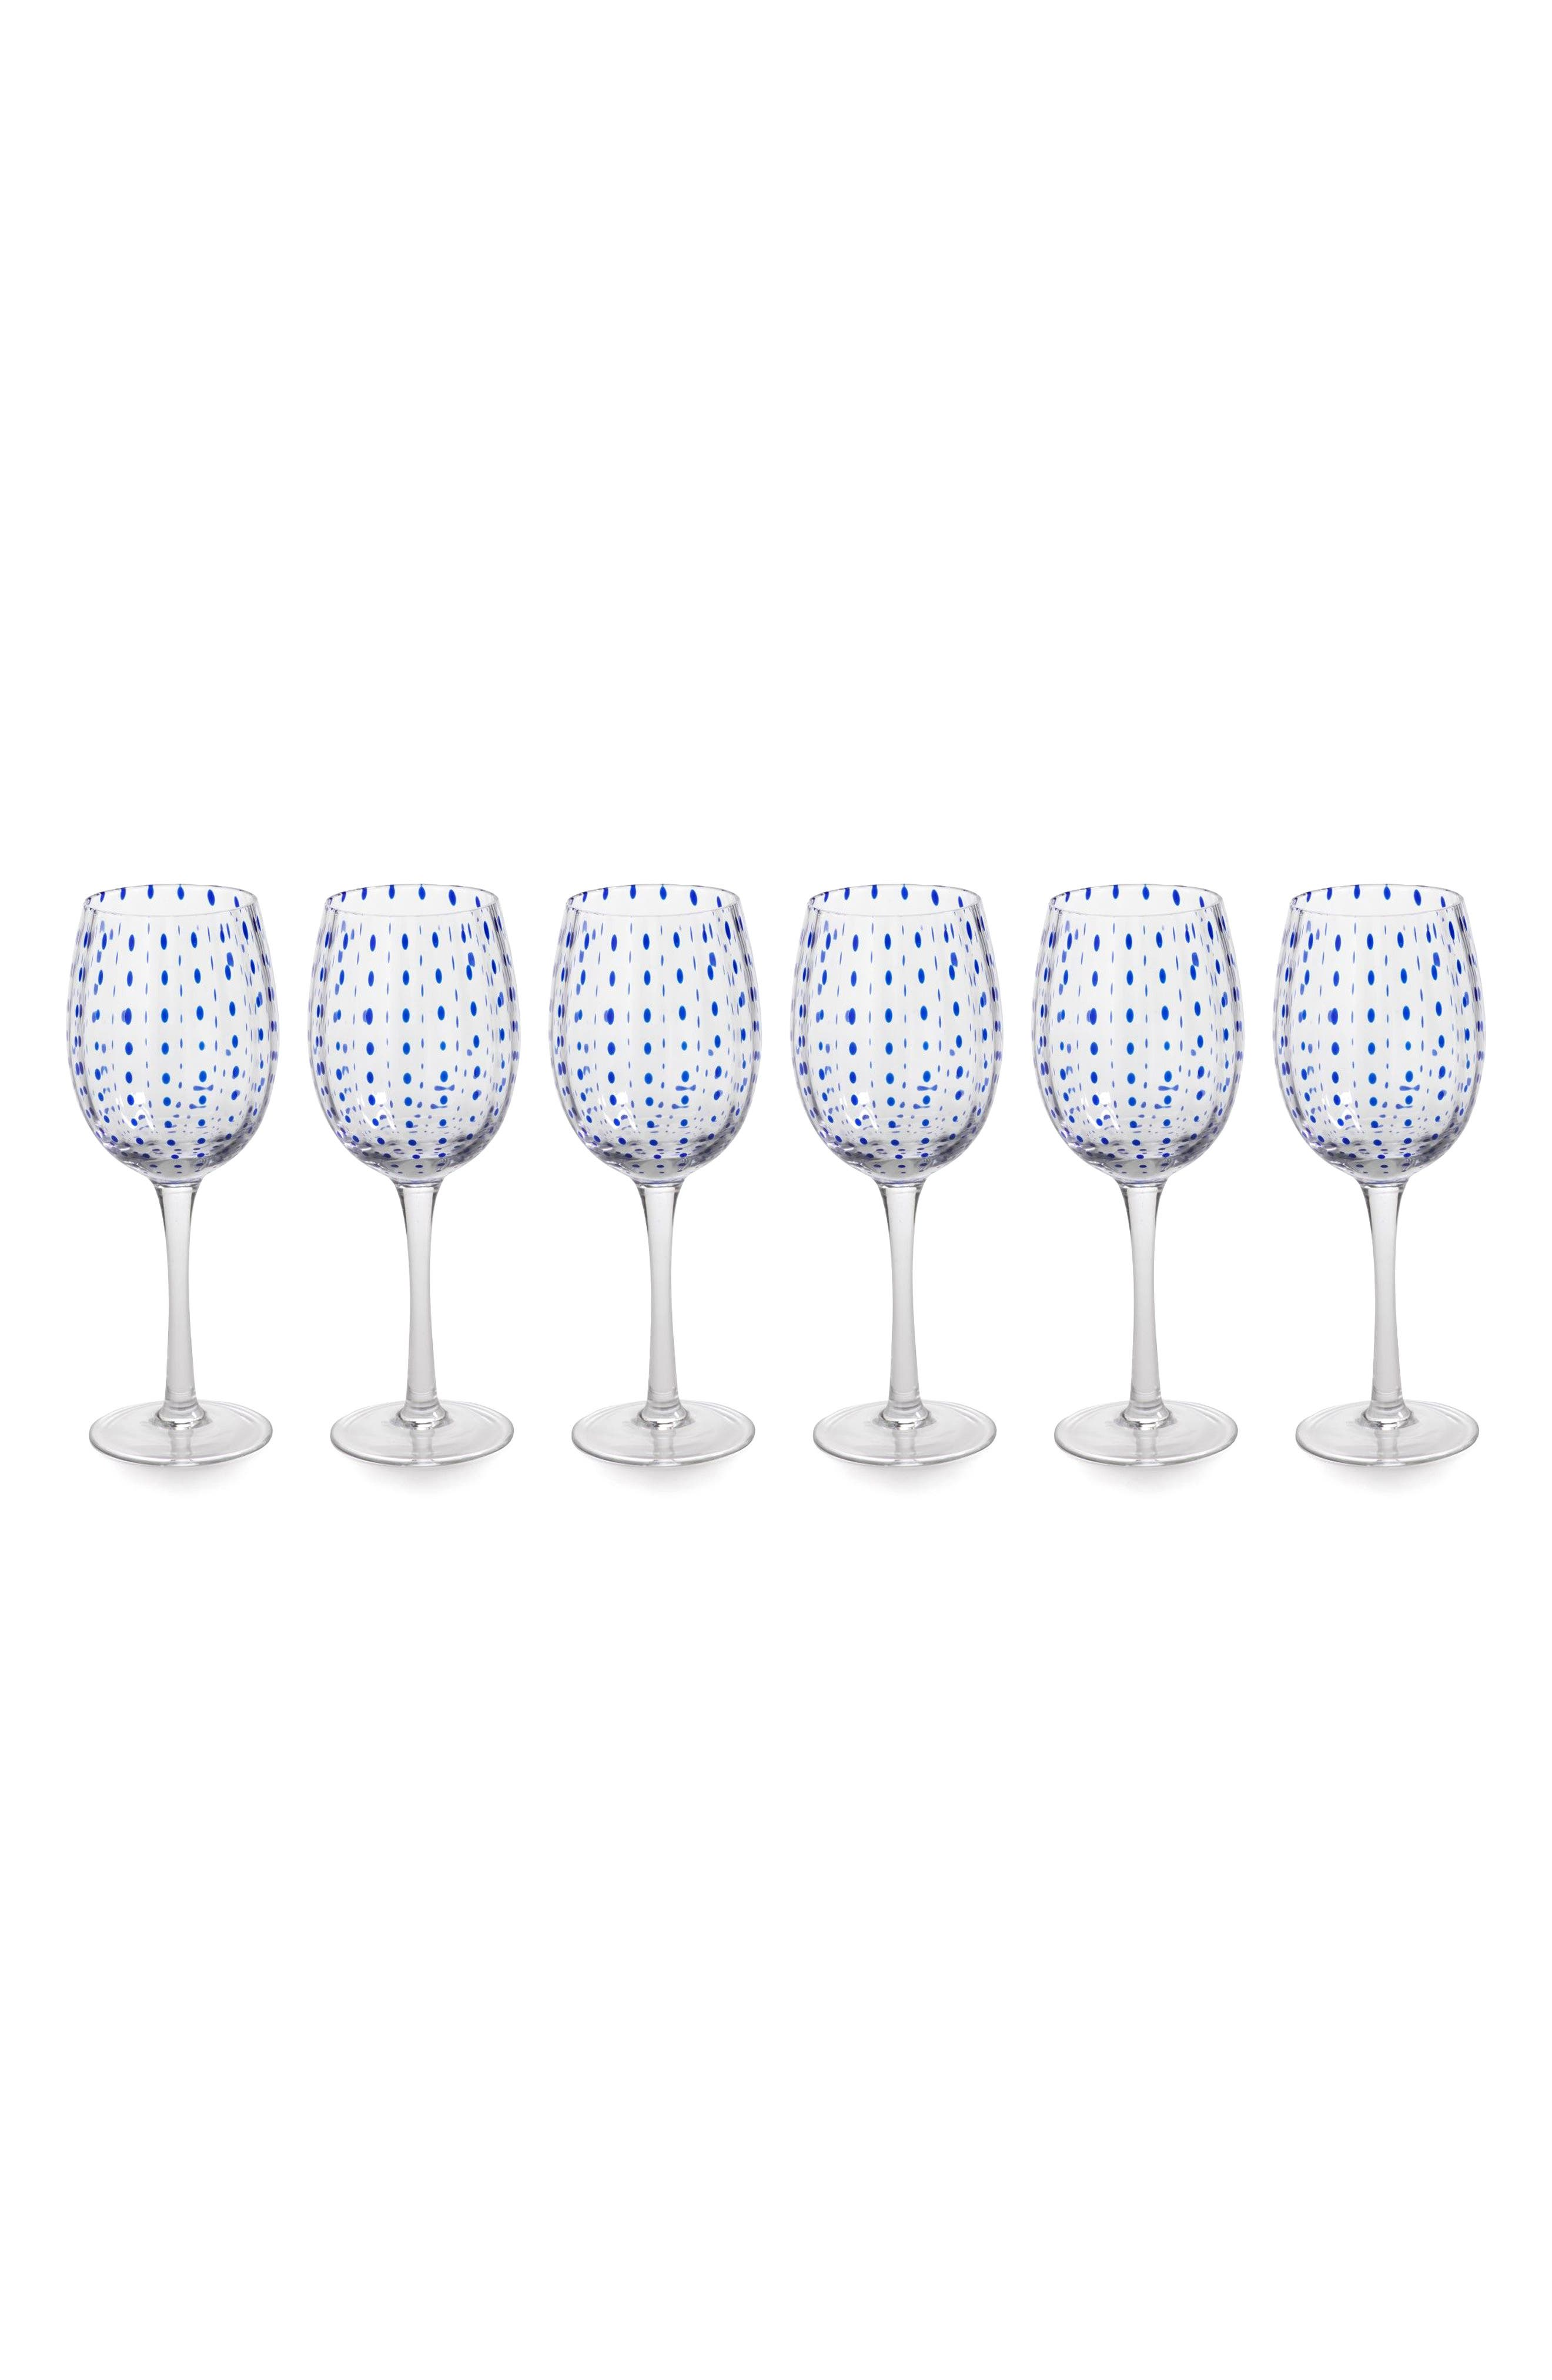 Main Image - Zodax Mavi Set of 6 Wine Glasses